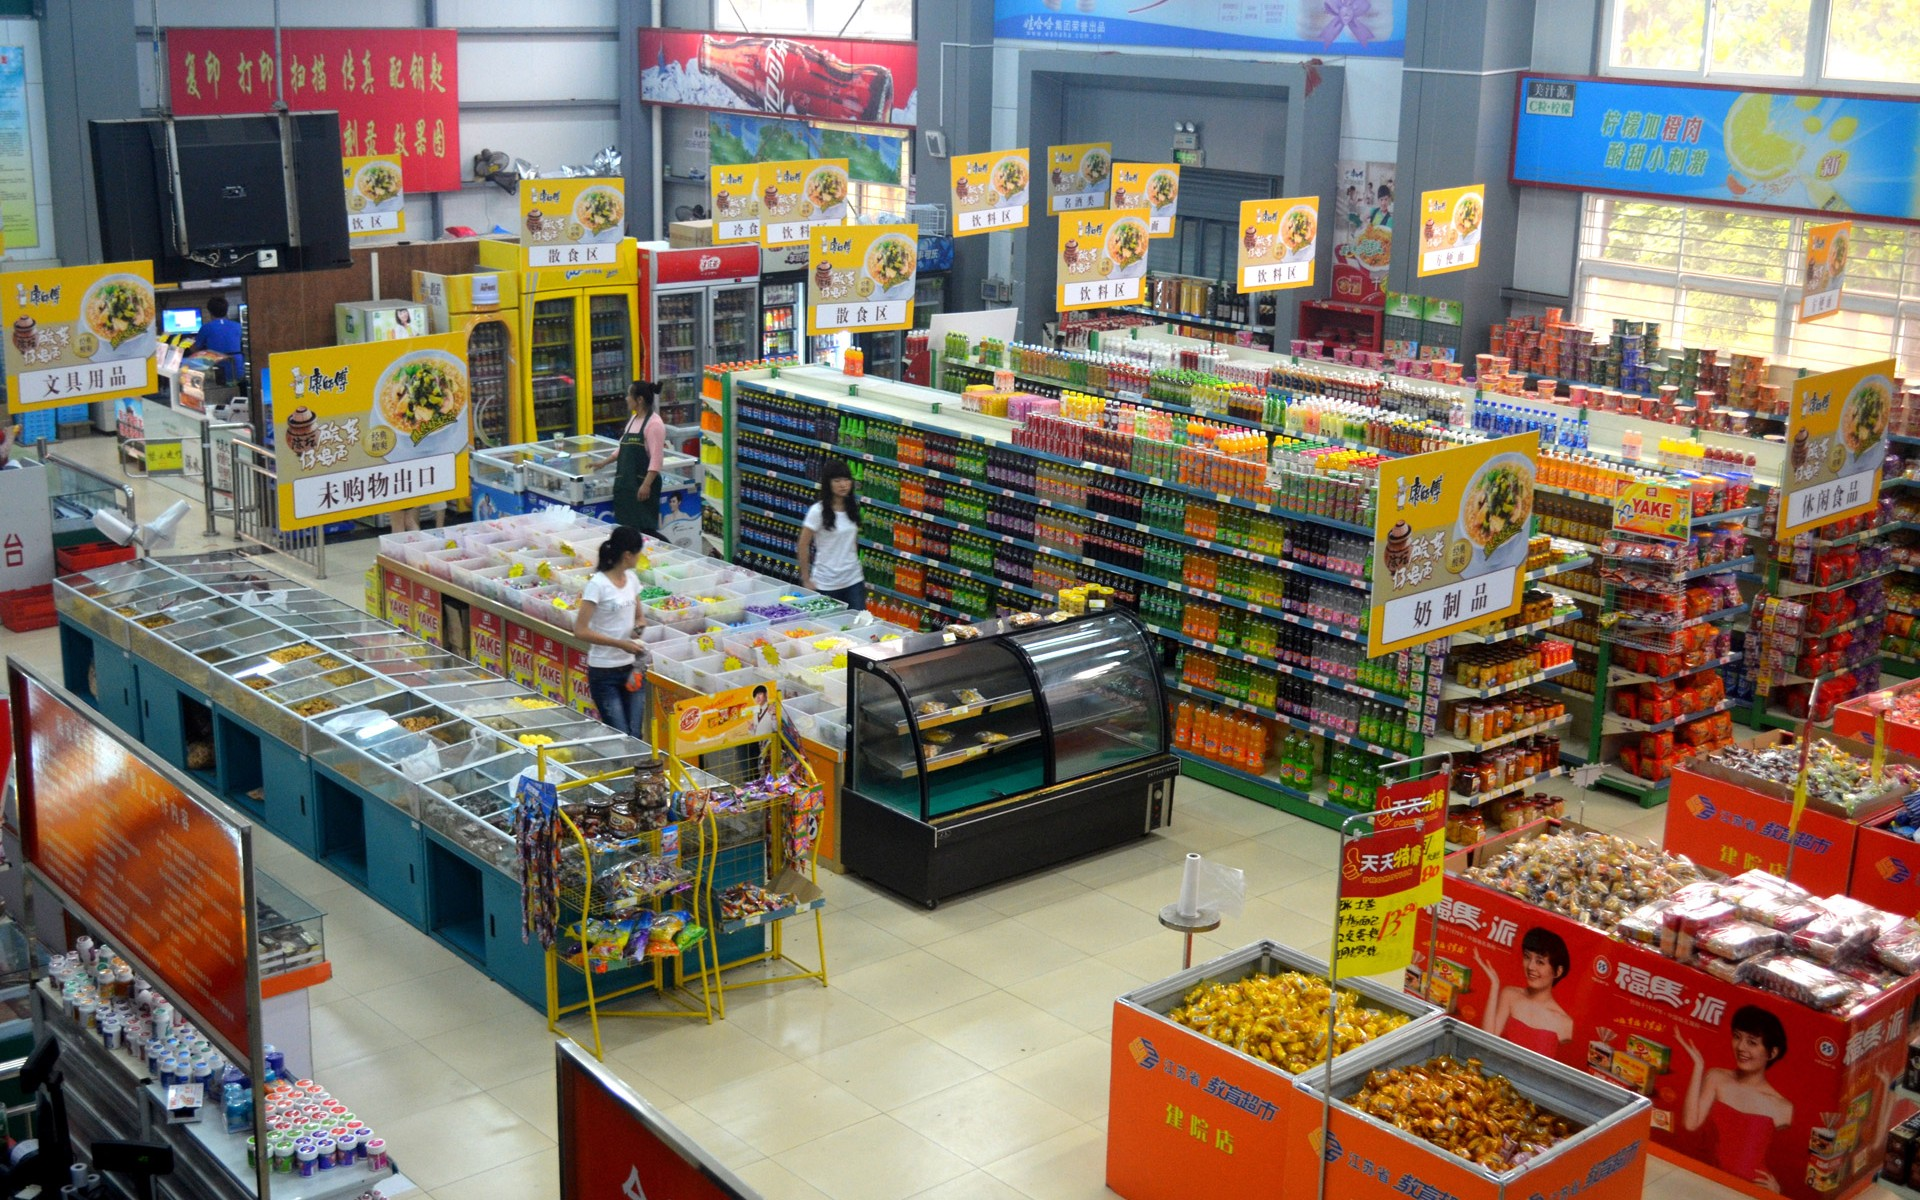 IoT Applied in Retail: 7 Real Examples - DZone IoT